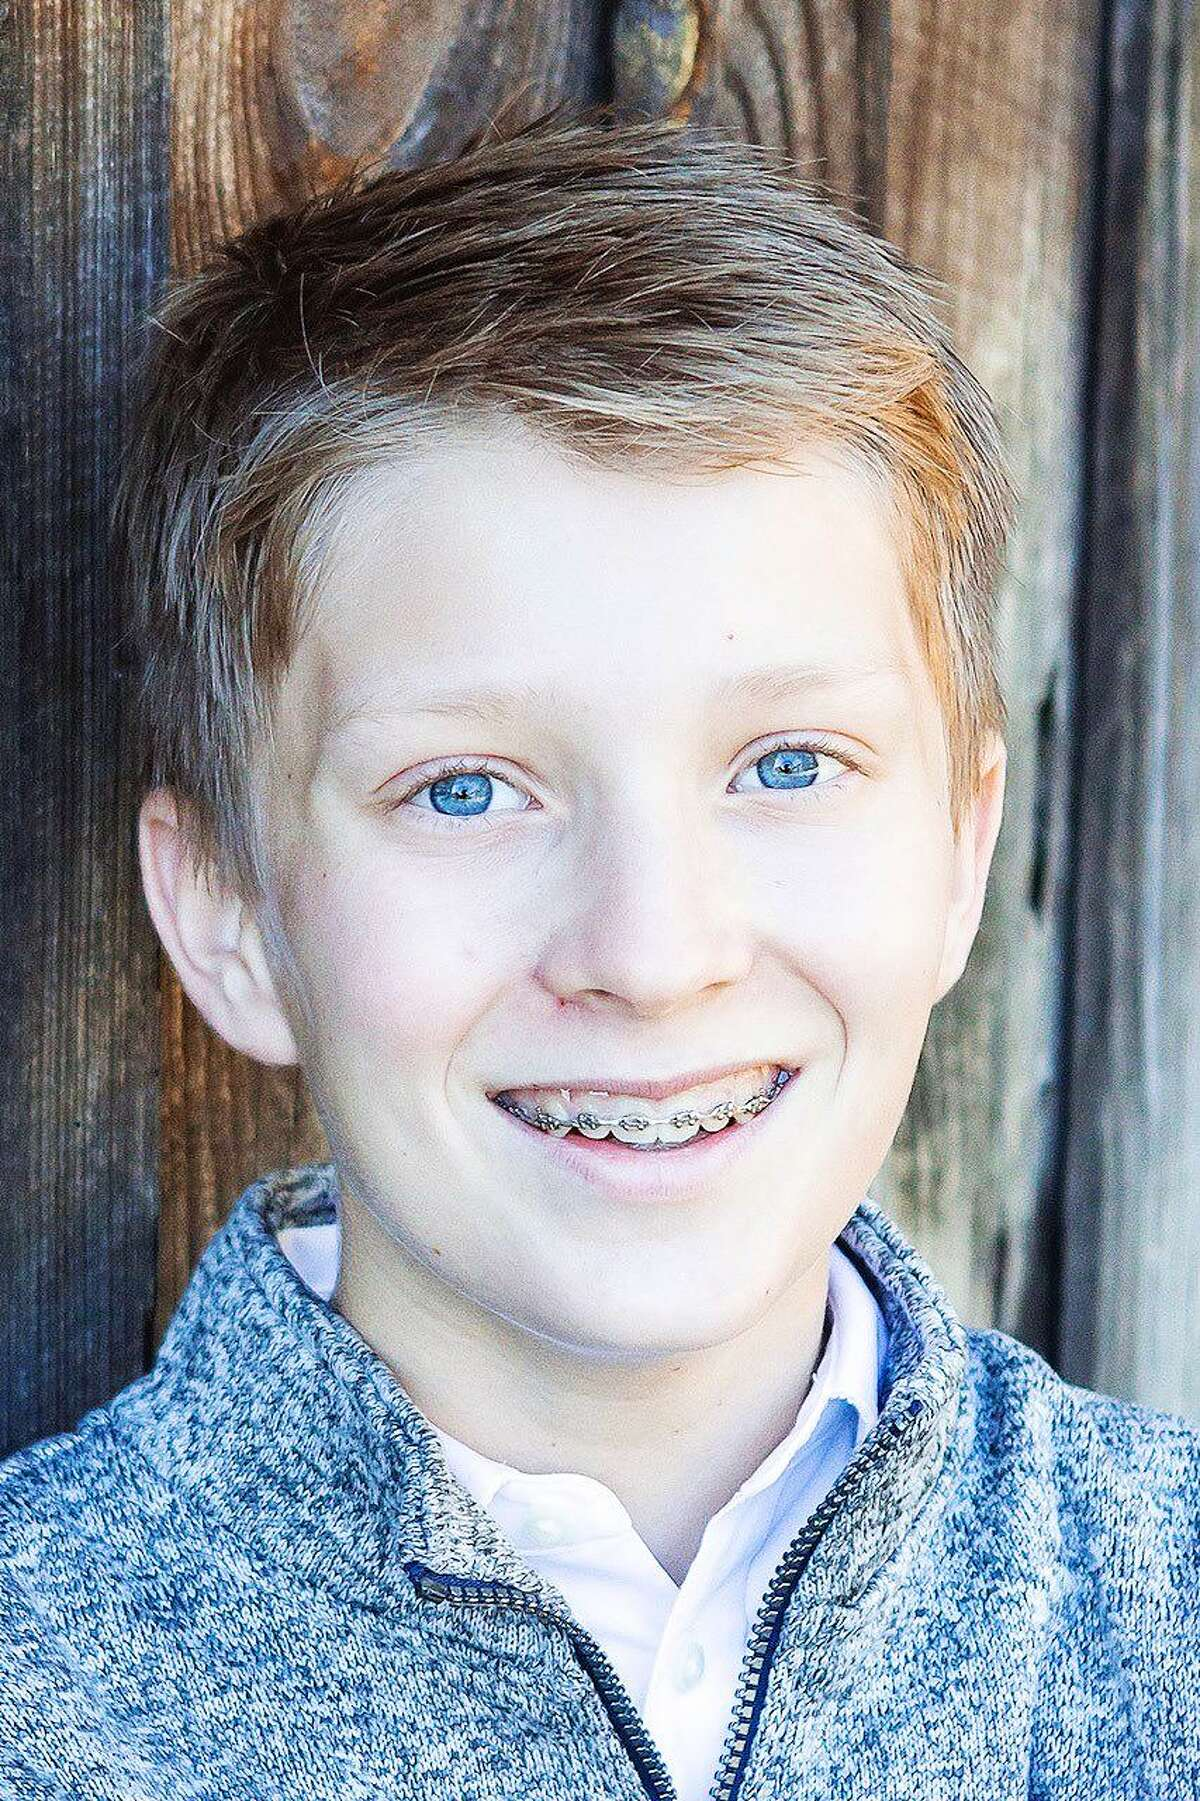 A violent thunderstorm came up on the Bert Adams Scout Camp in Covington, Georgia and several trees were blown over including one that hit the tent of Elijah Knight from Cypress in June of 2018. Knight was killed in the freak accident.